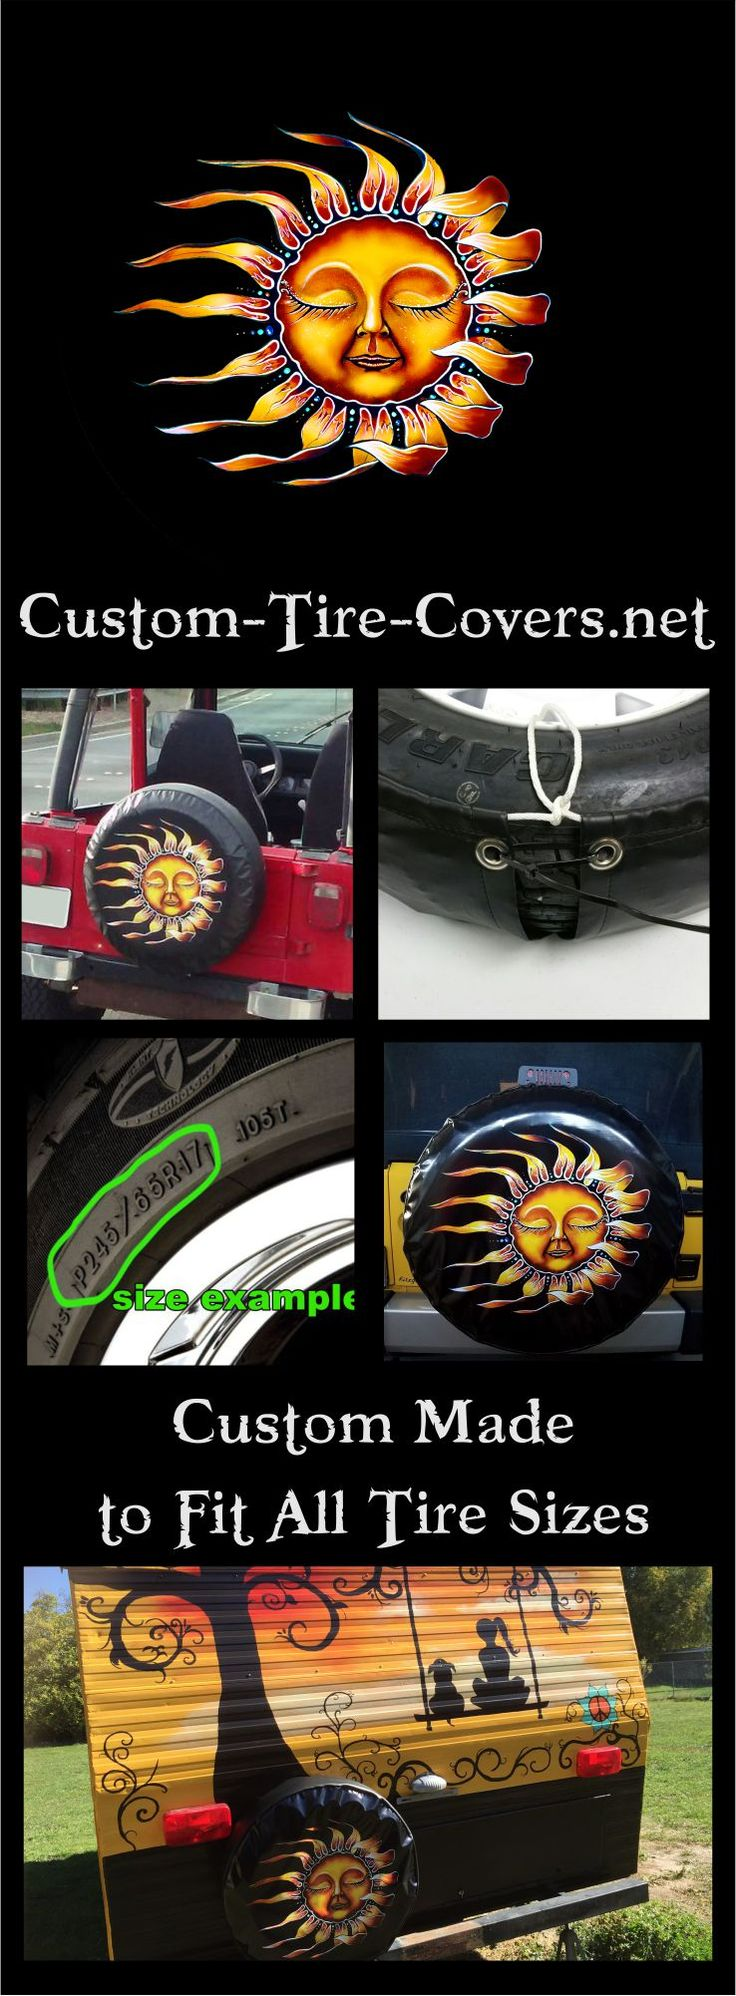 Sleeping Sun spare tire cover by Dubois Studios. Custom made to fit your exact tire size.